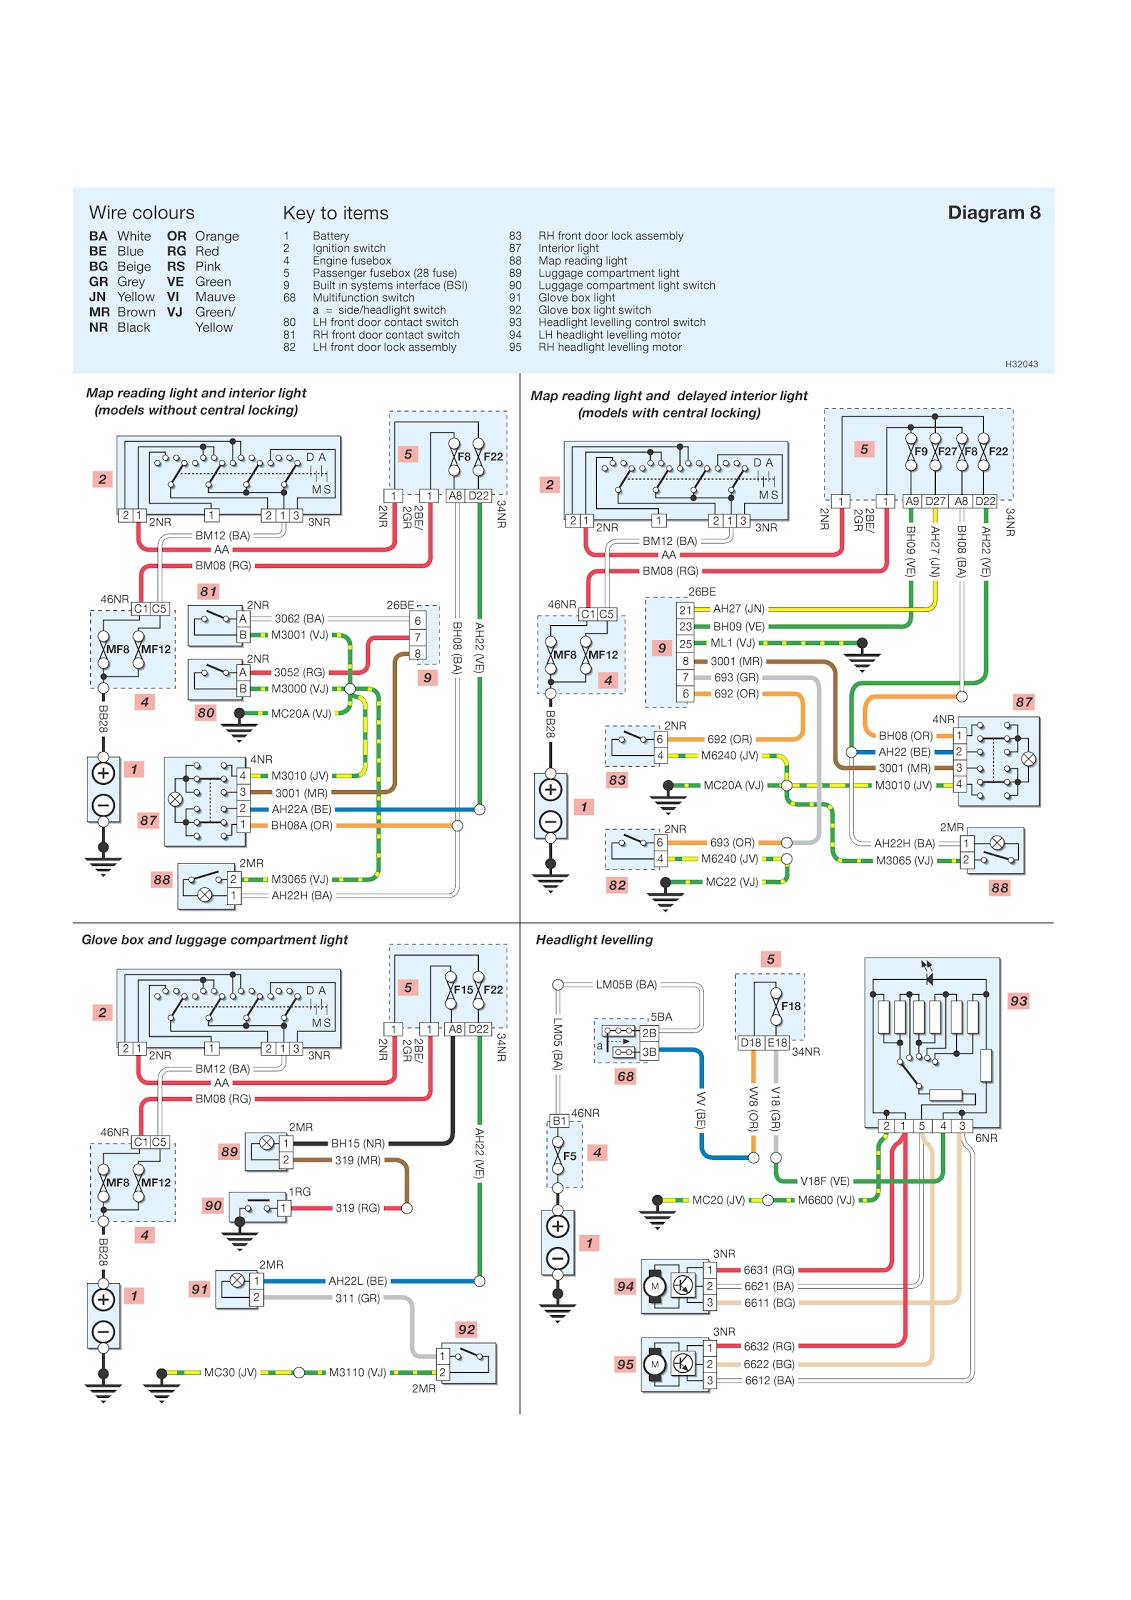 2003 Grand Am Fuse Box Peugeot 206 Wiring Schematic Interior Lighting Continued